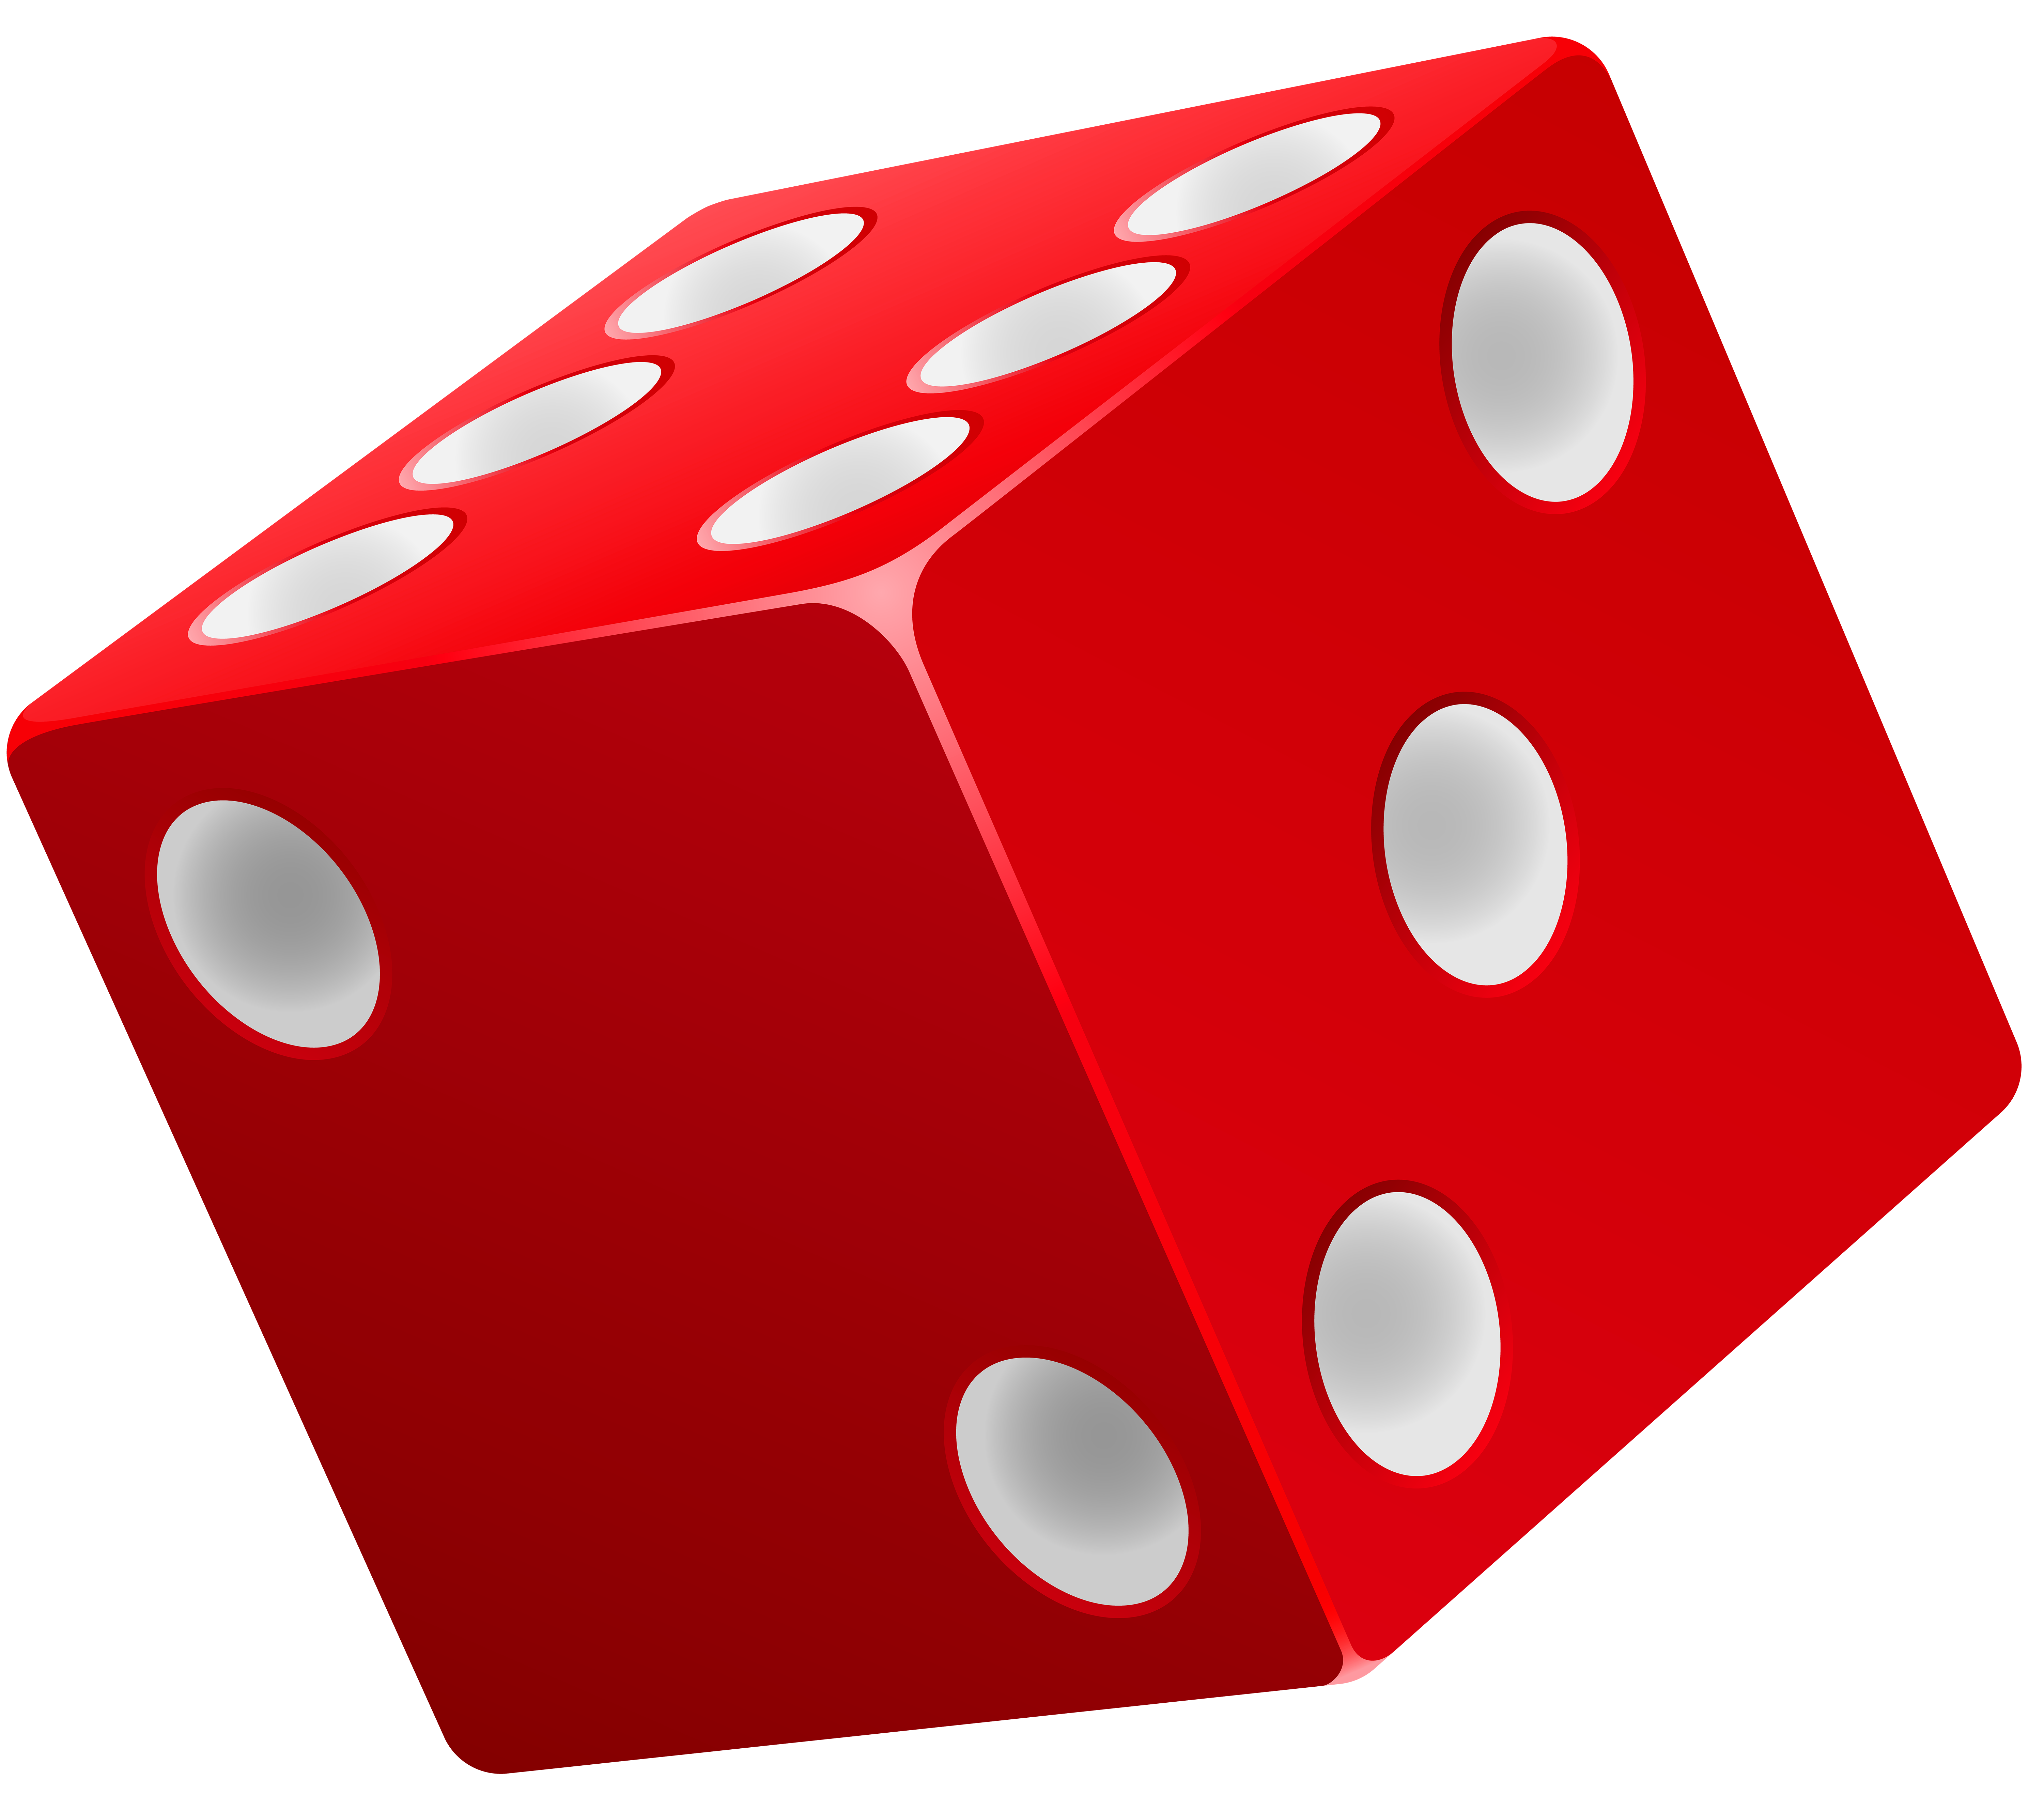 red dice clipart clipart images gallery for download myreal clip art #30549